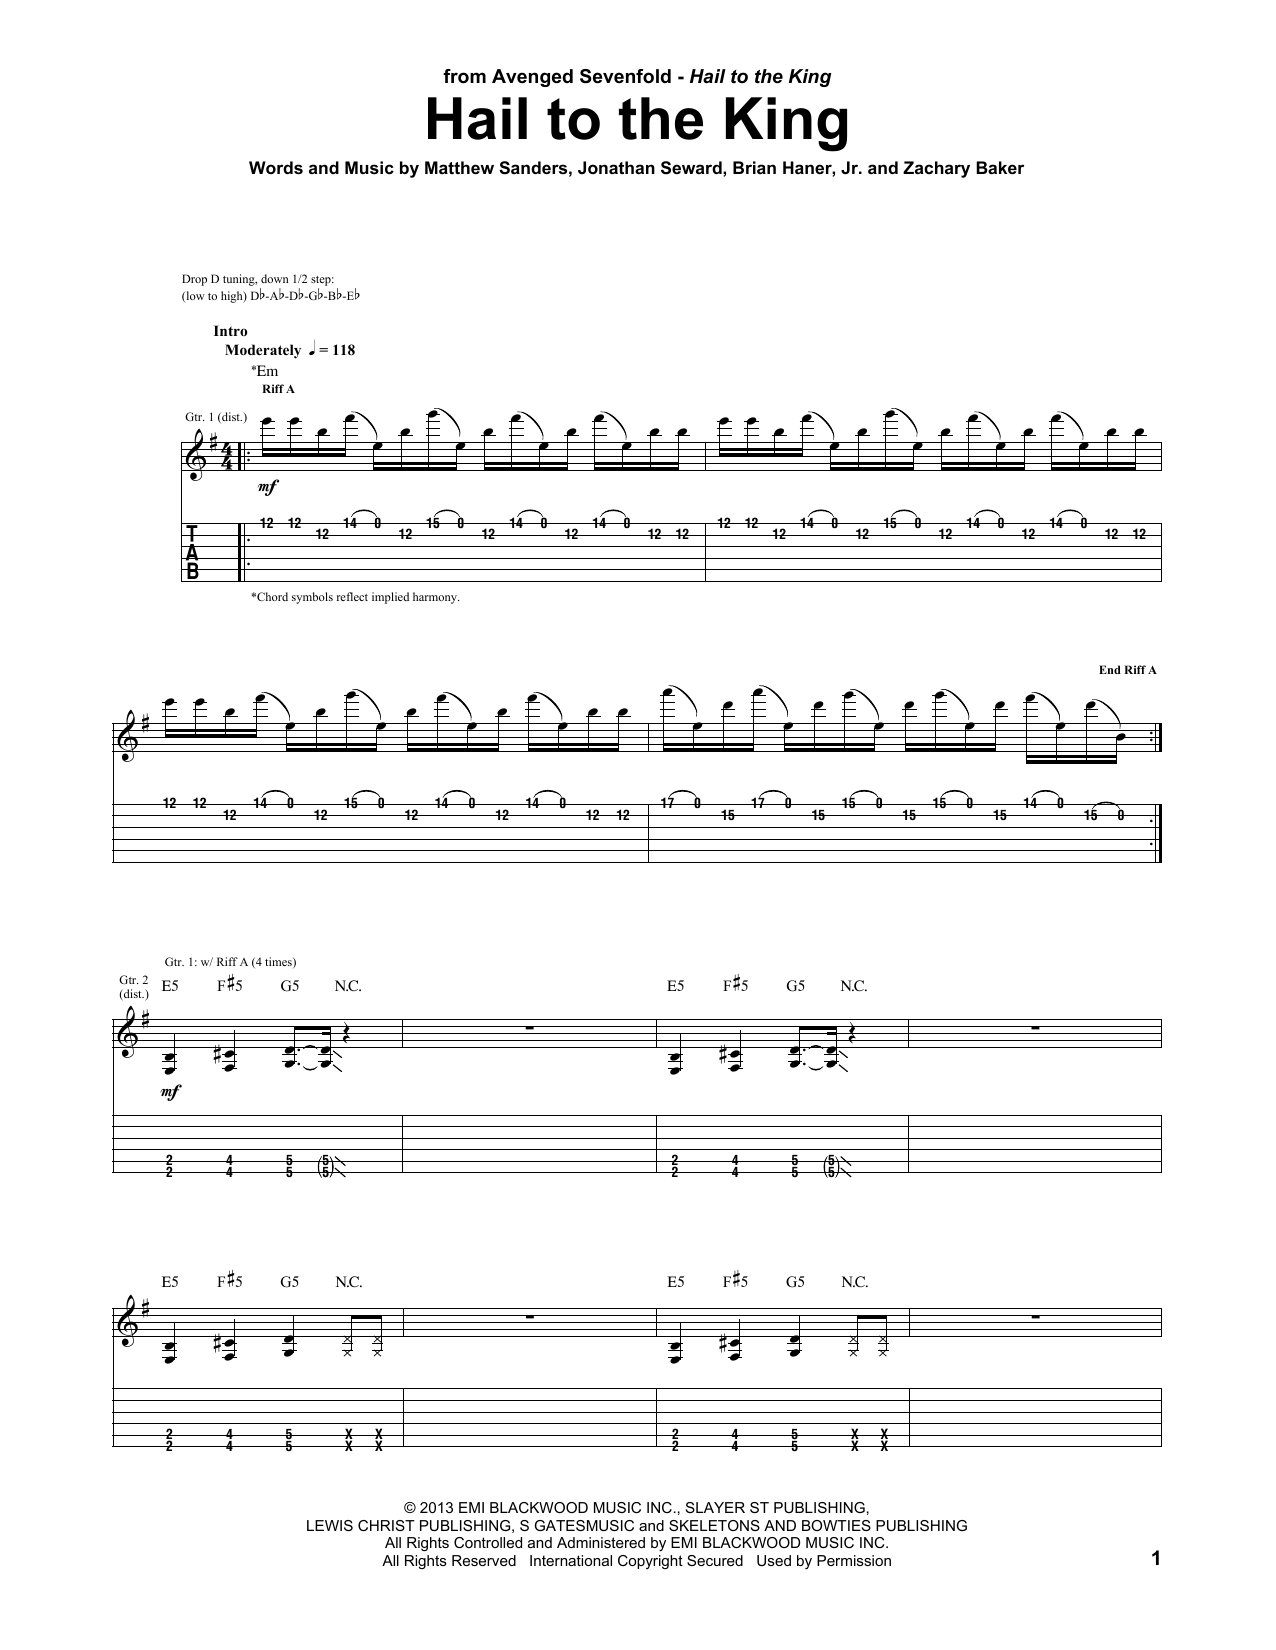 Guitar guitar tabs avenged sevenfold : Hail To The King by Avenged Sevenfold - Guitar Tab - Guitar Instructor